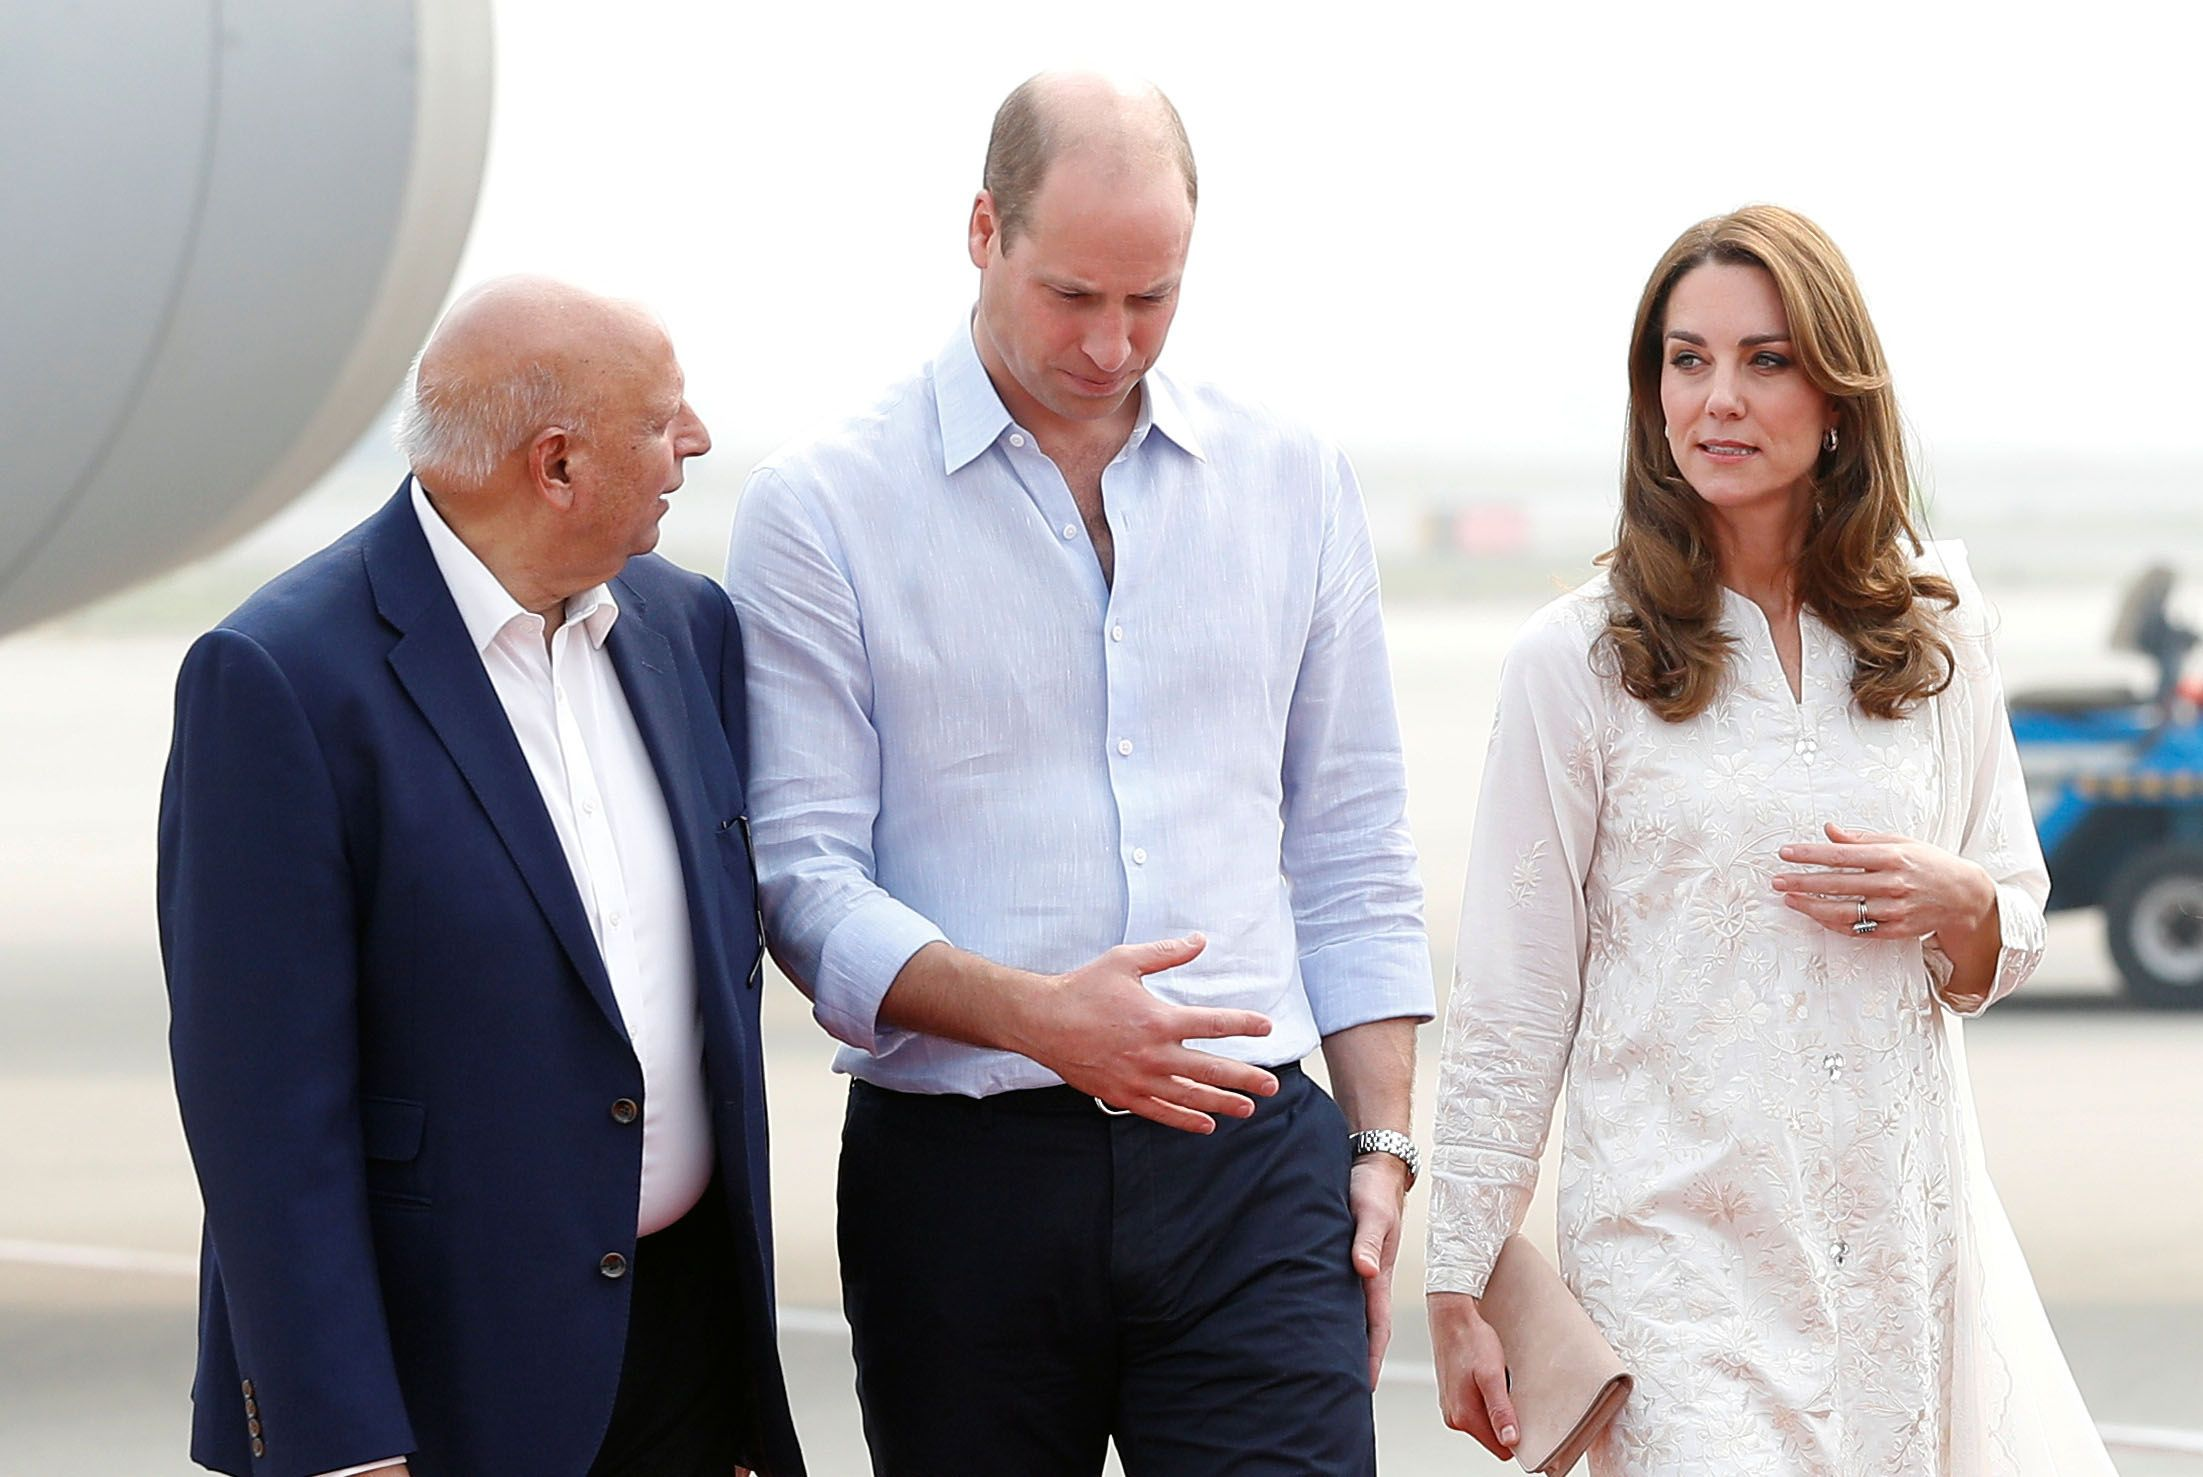 Kate Middleton Wears a White Shalwar Kameez by Gul Ahmed on Arrival in Lahore